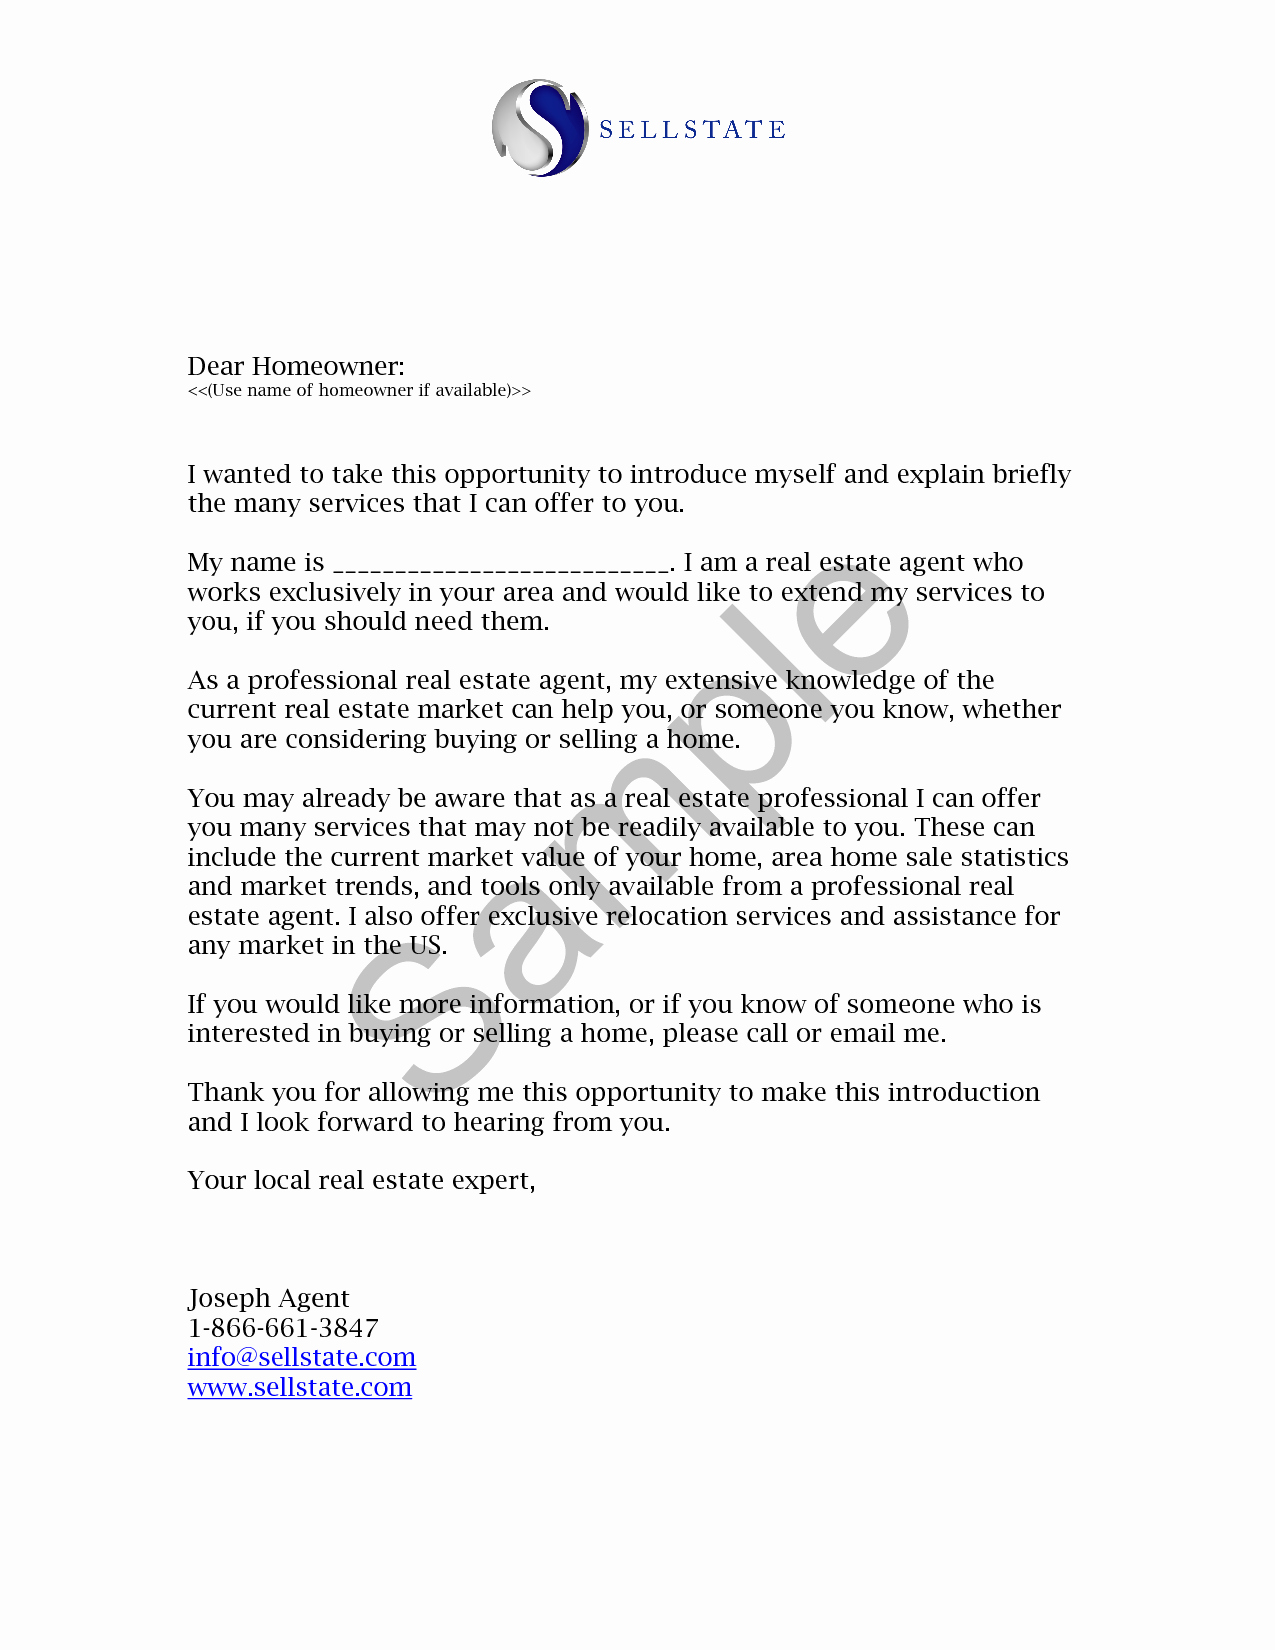 Real Estate Investor Letter Templates Awesome Real Estate Letters Of Introduction Introduction Letter